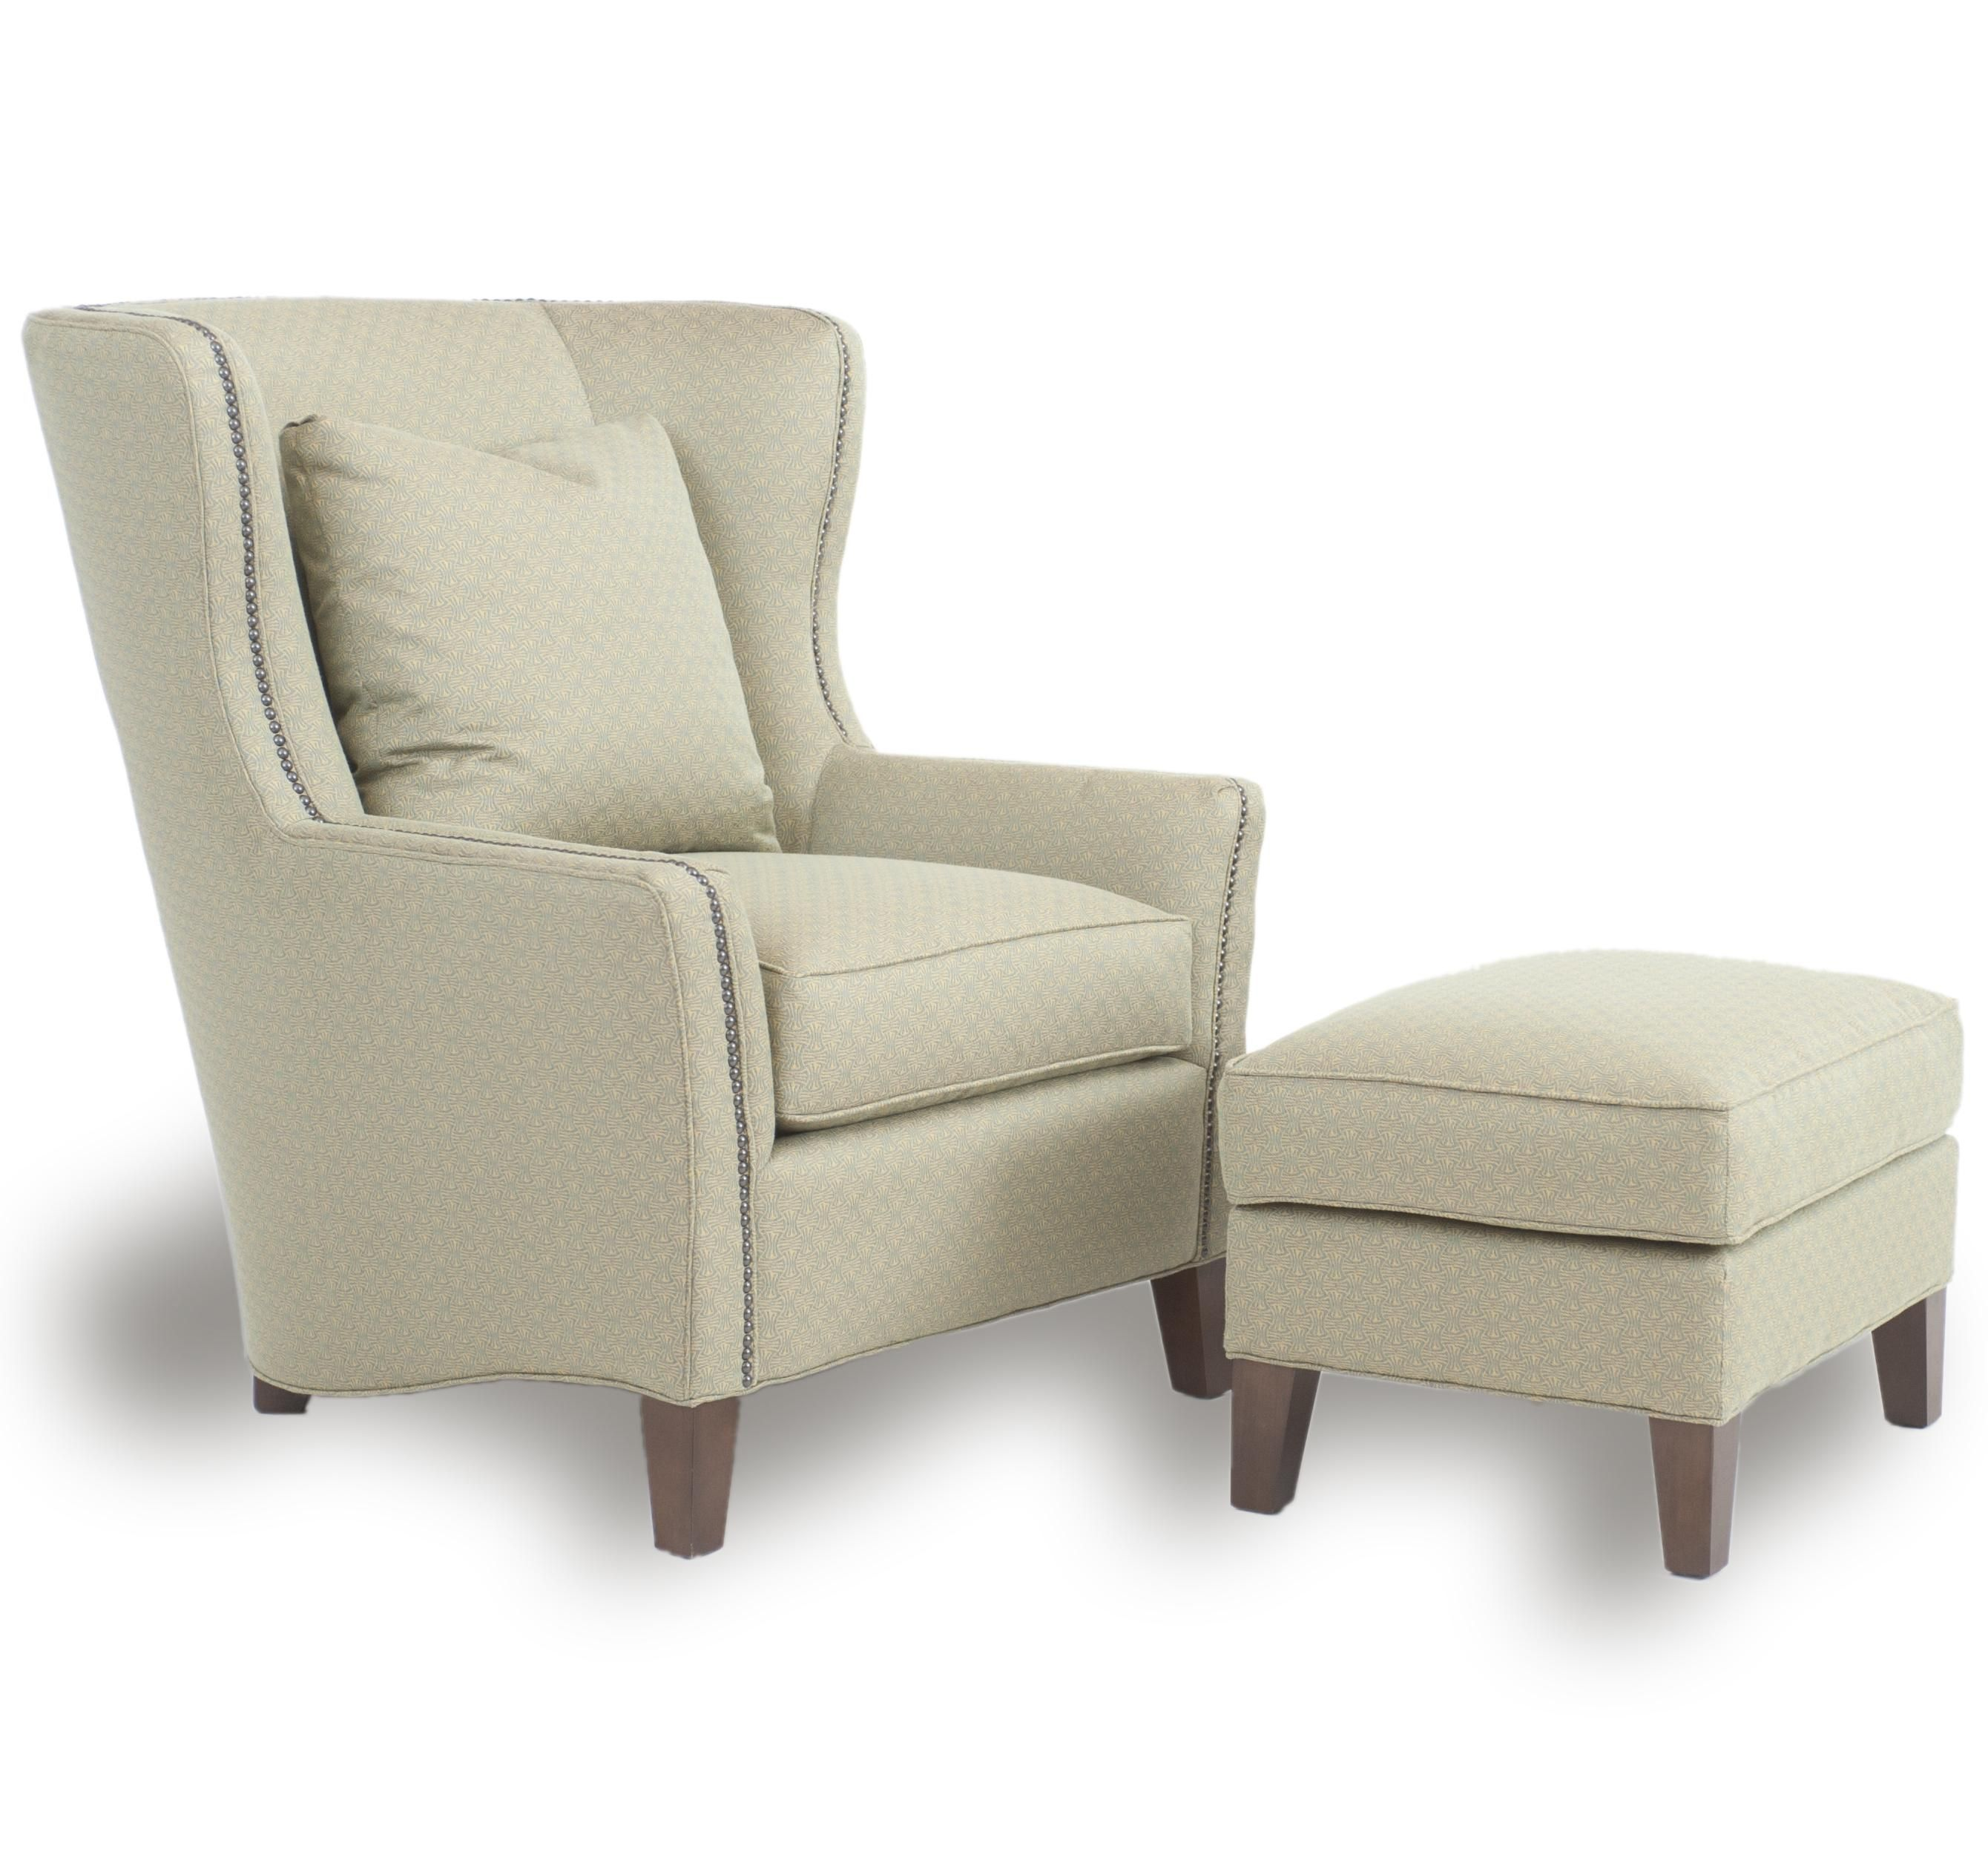 Upholstered Wingback Chair Furniture Pinterest